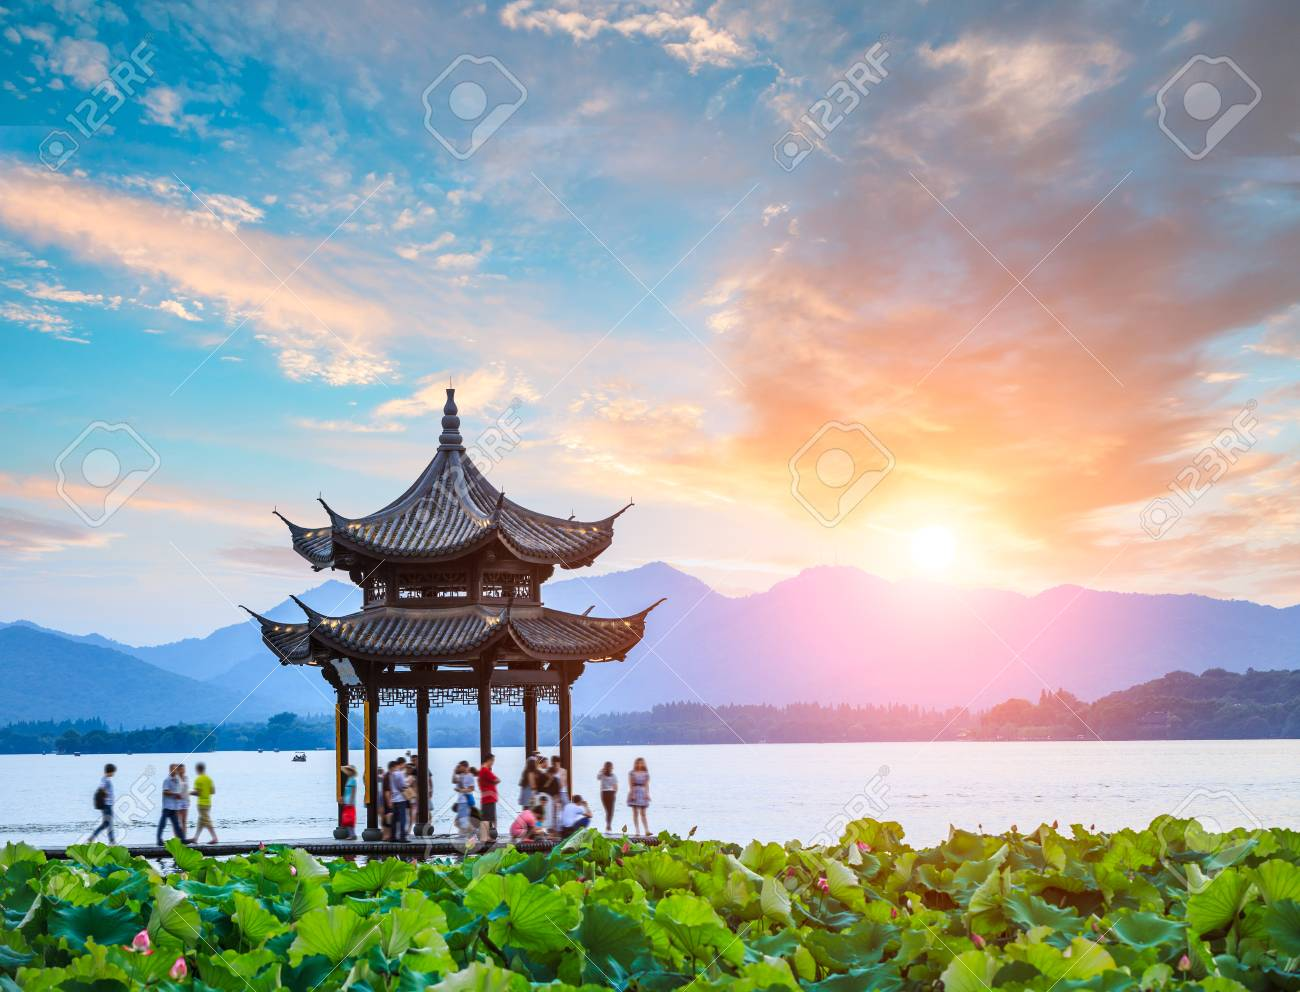 ancient pavilion of Hangzhou west lake at dusk, in China - 78563914